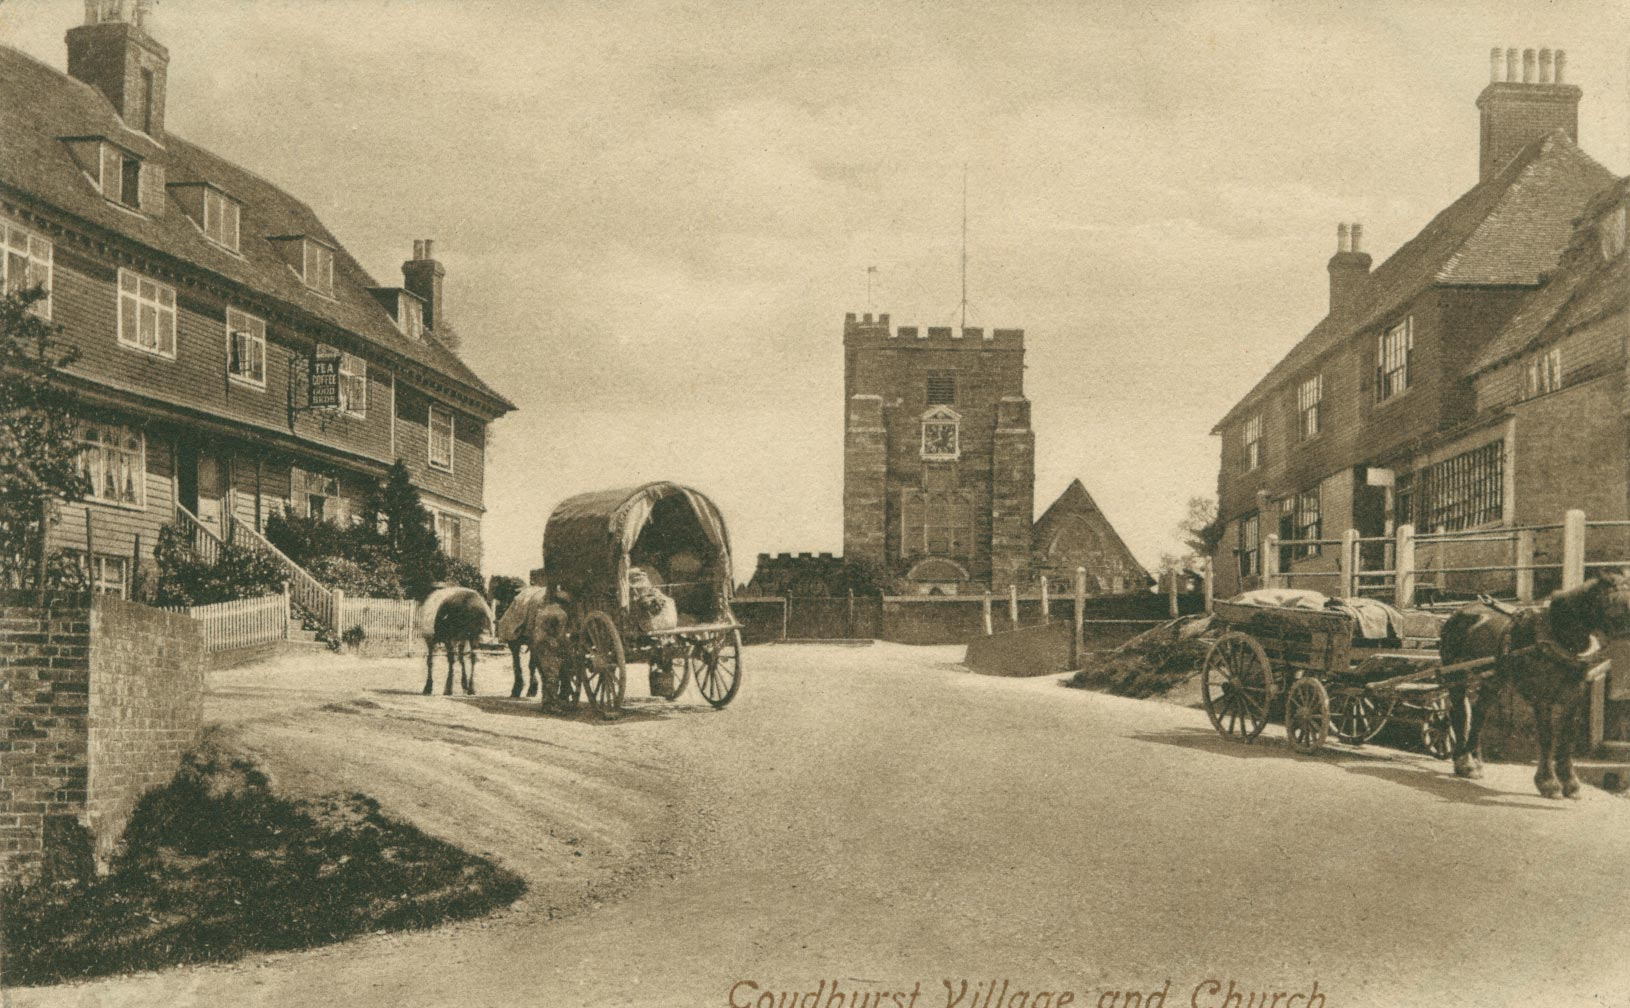 St. Mary's Church, Goudhurst pre-motor-traffic